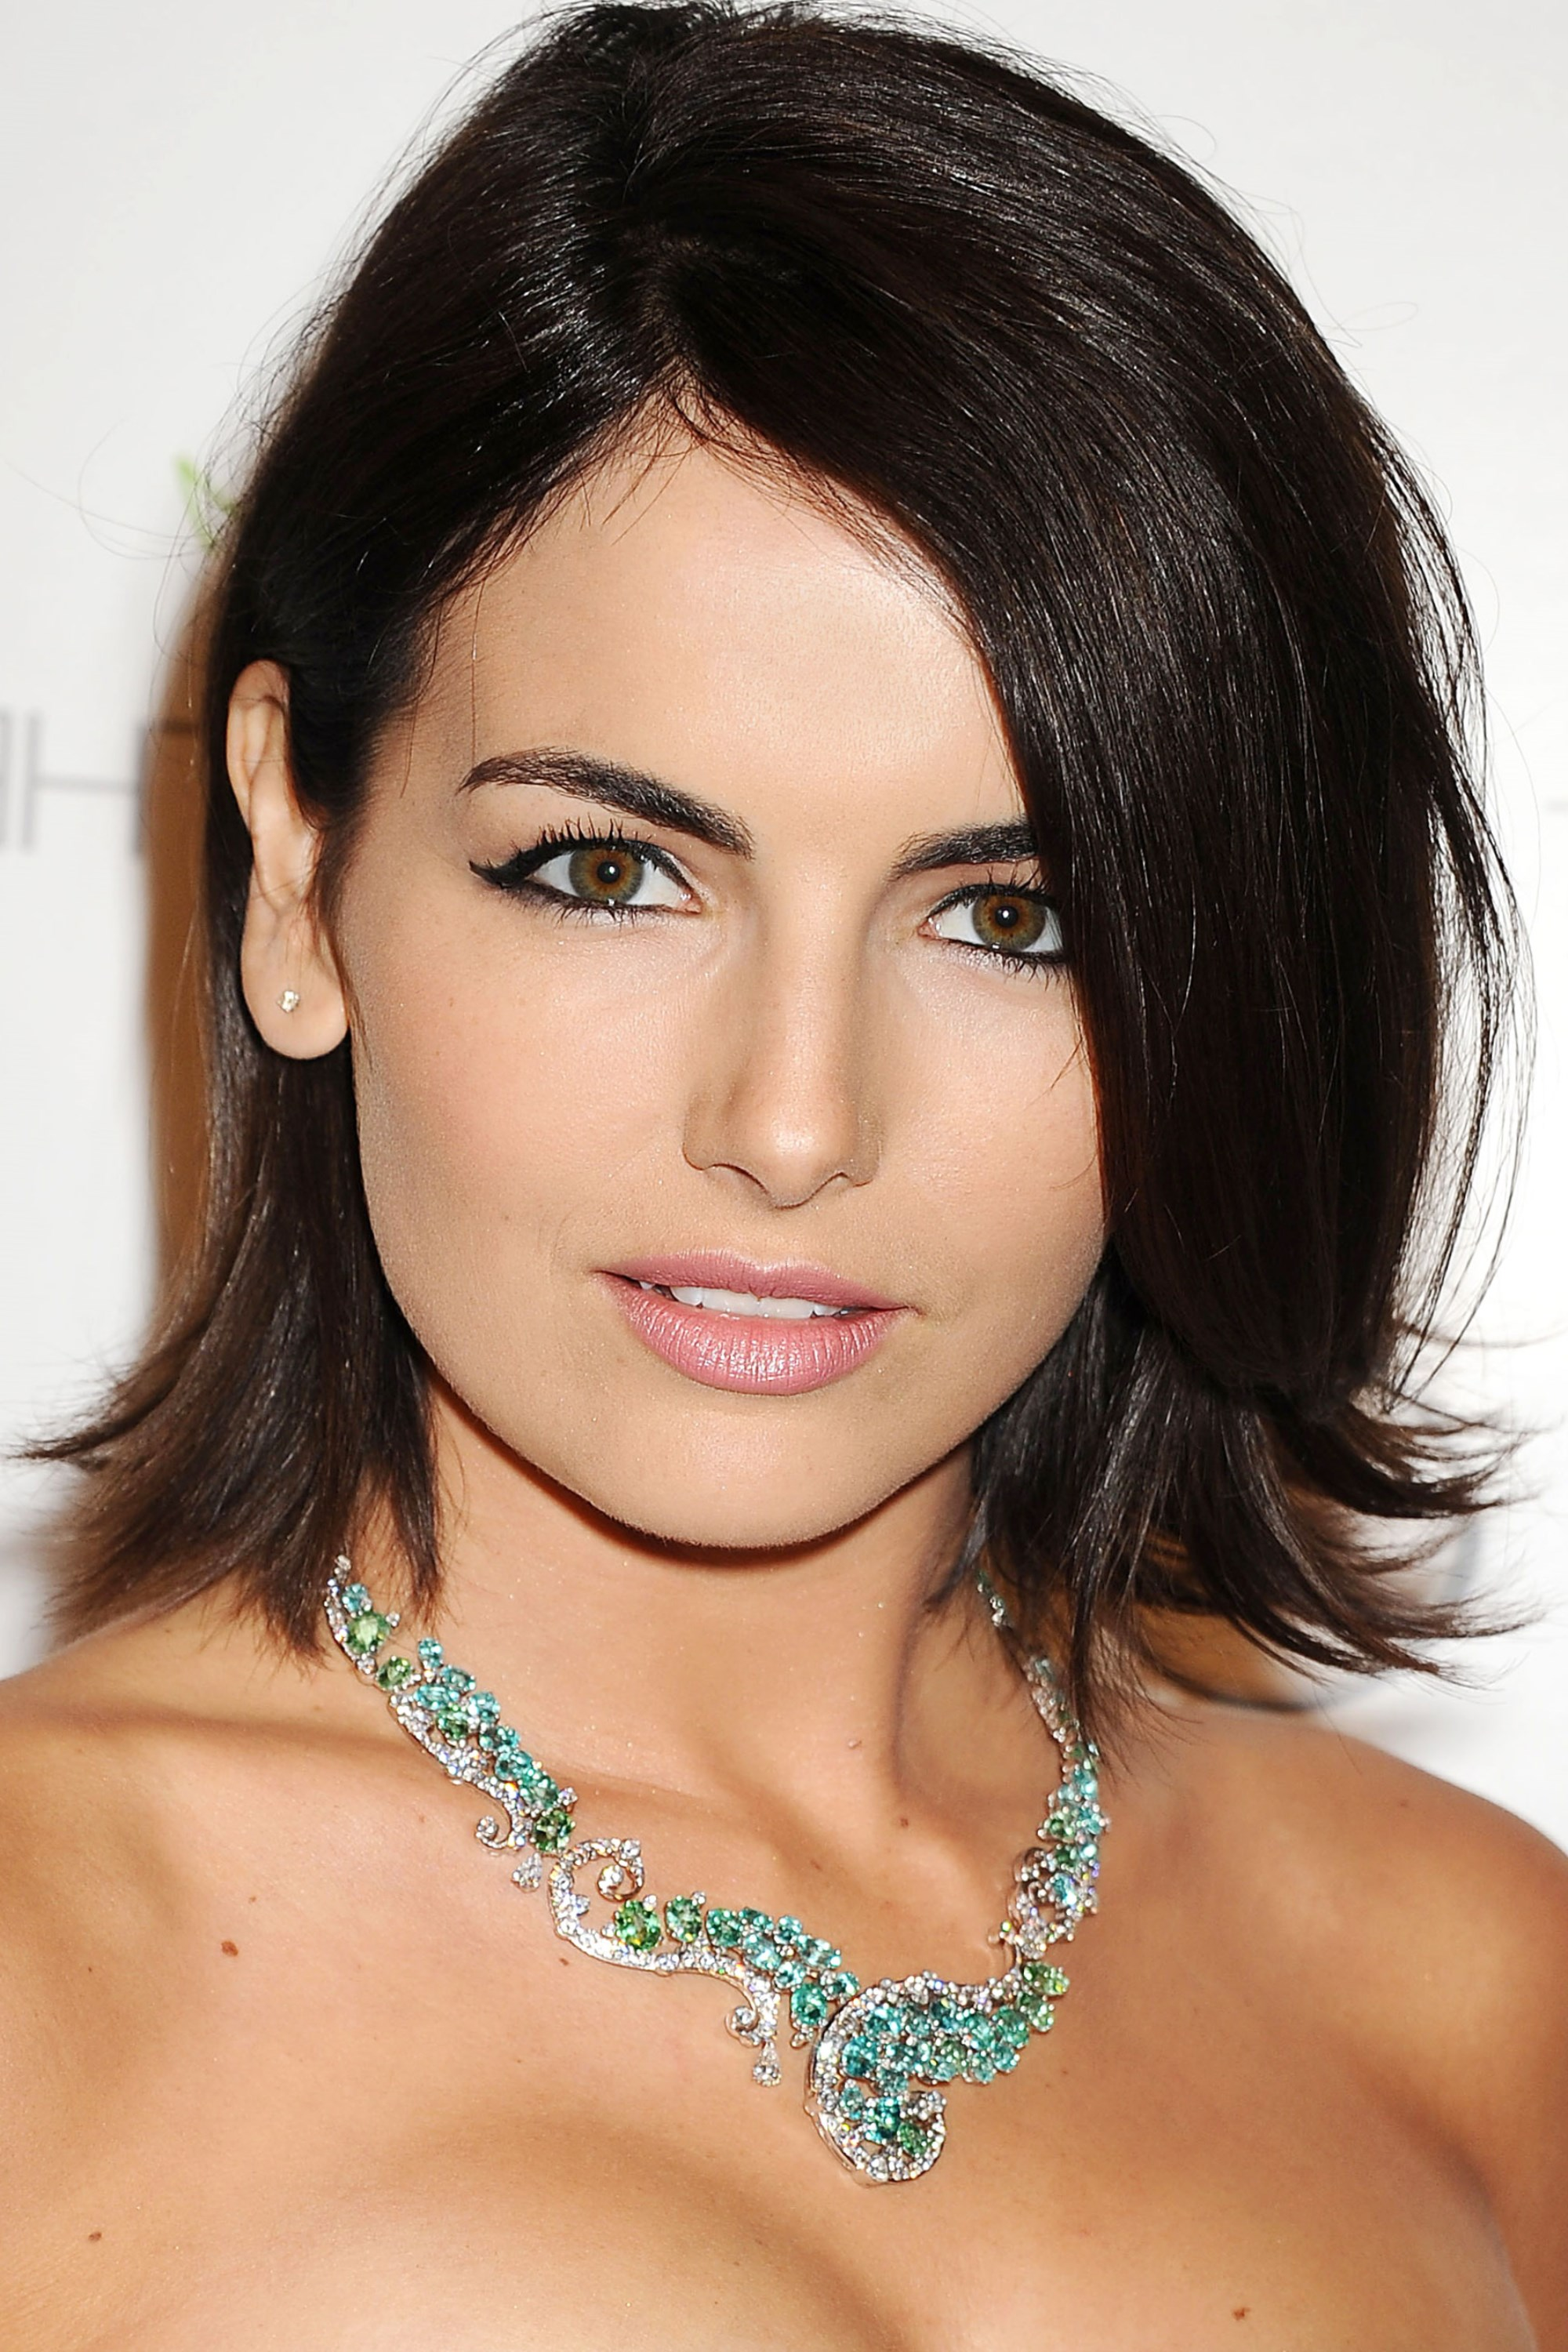 Hairstyles Very Fine Thin Hair : hairstyles for thin fine hair that fashionmonday bob haircuts for fine ...